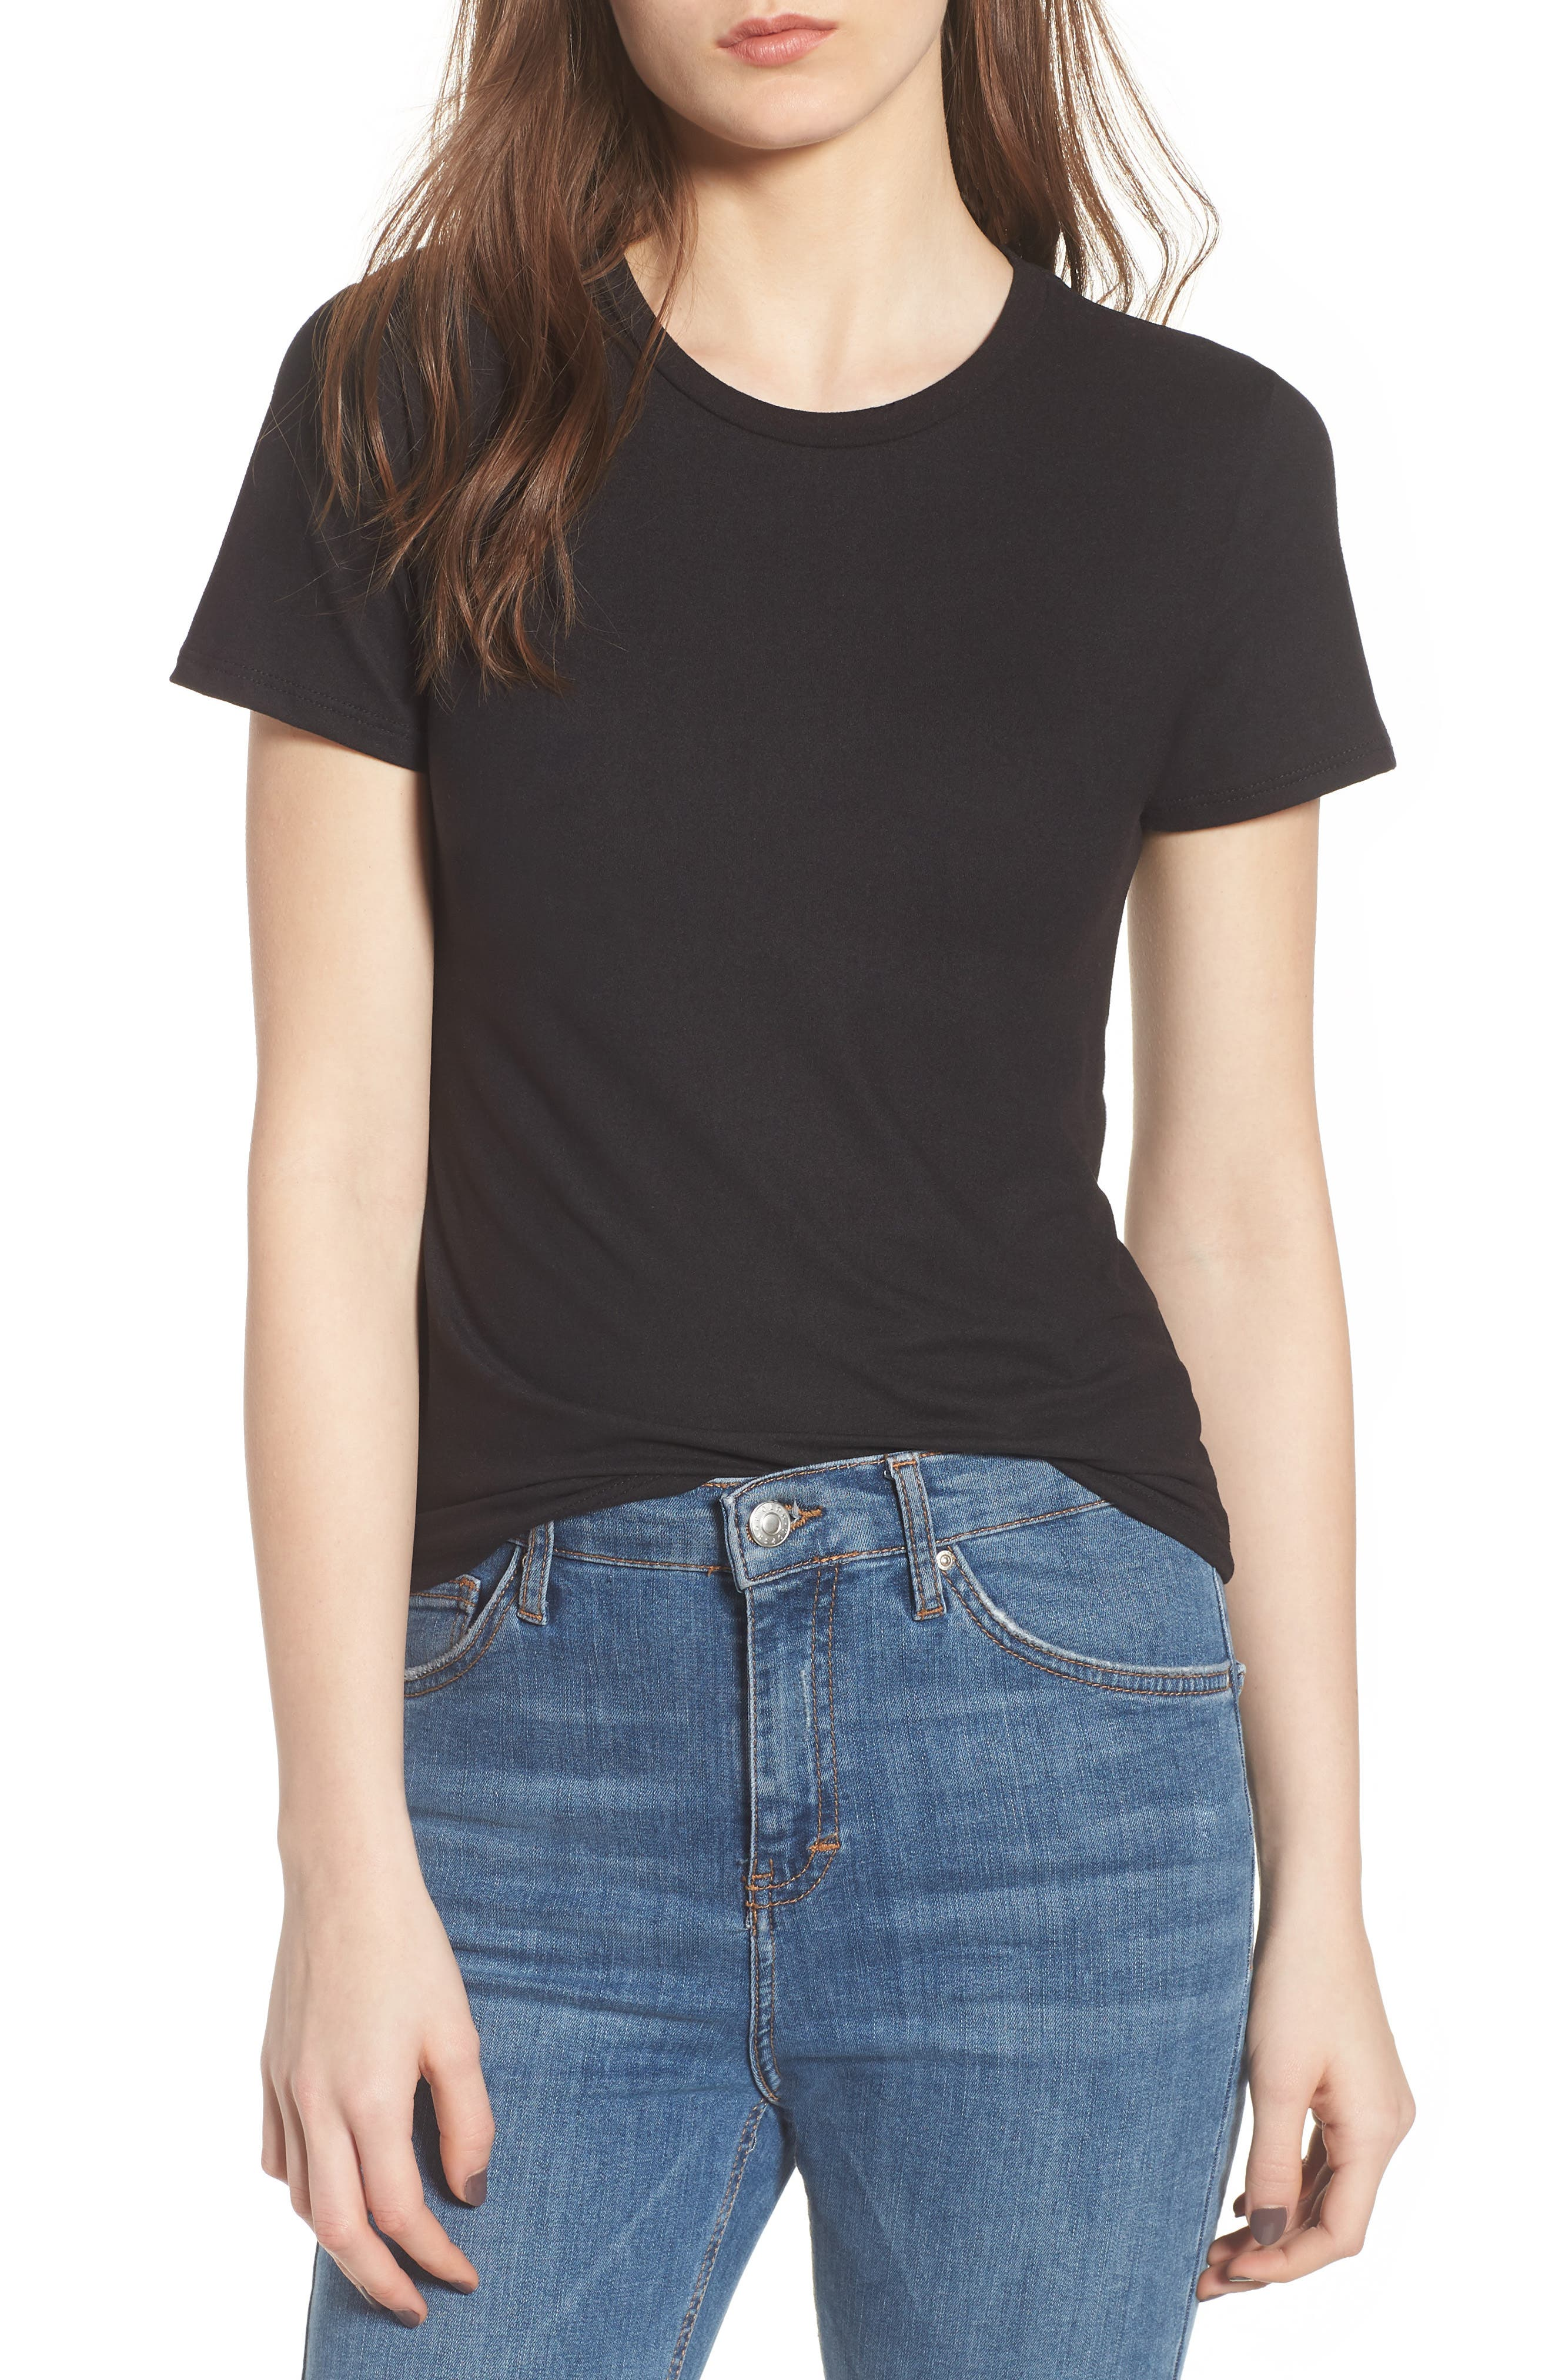 PROJECT SOCIAL T PST by Project Social T Fitted Tee, Main, color, 001